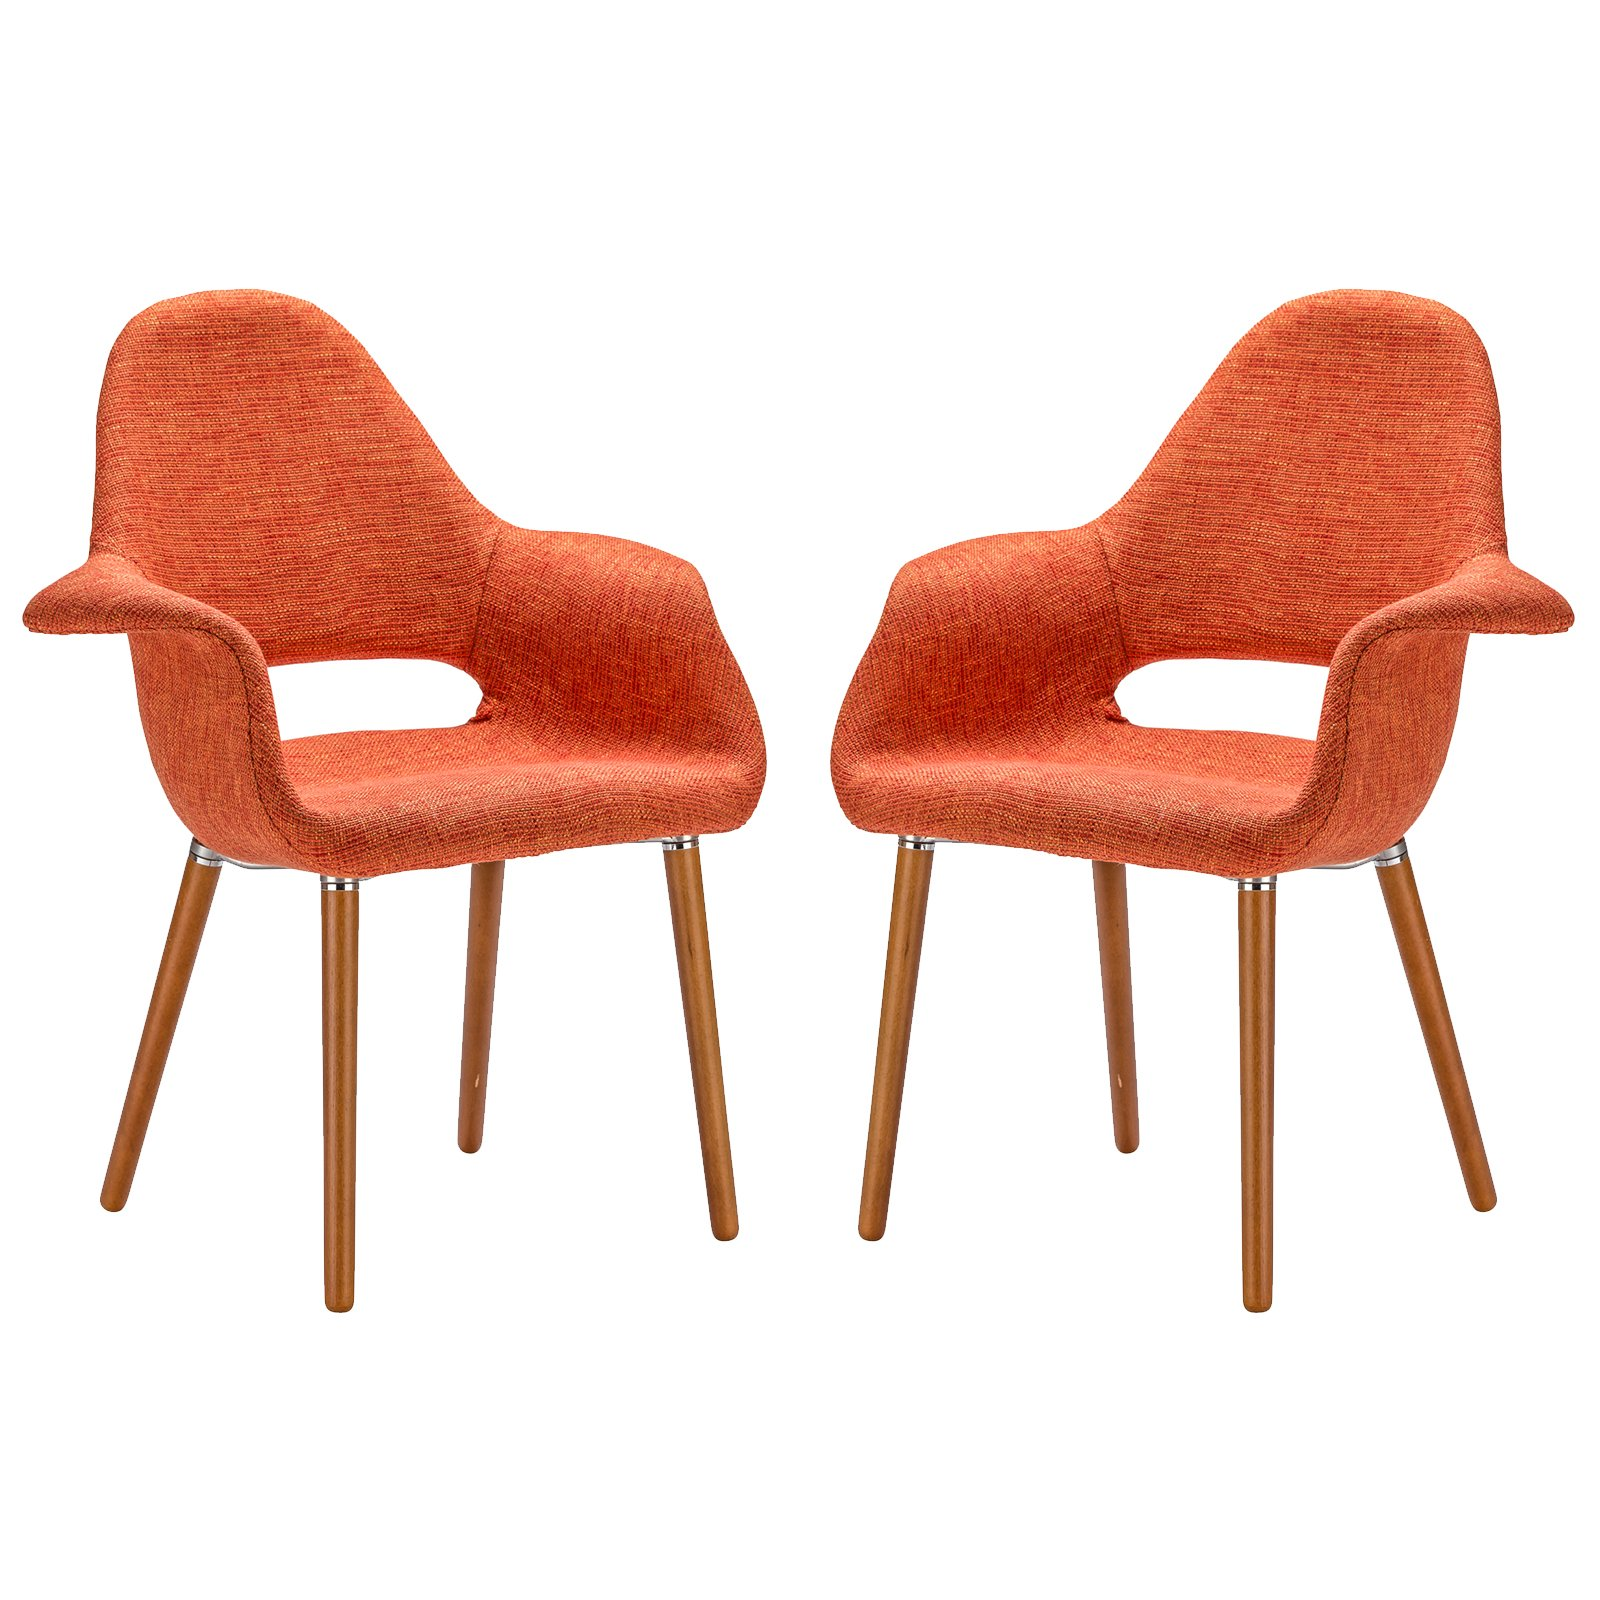 Upholstered Dining Room Arm Chairs Chair Pads Amp Cushions